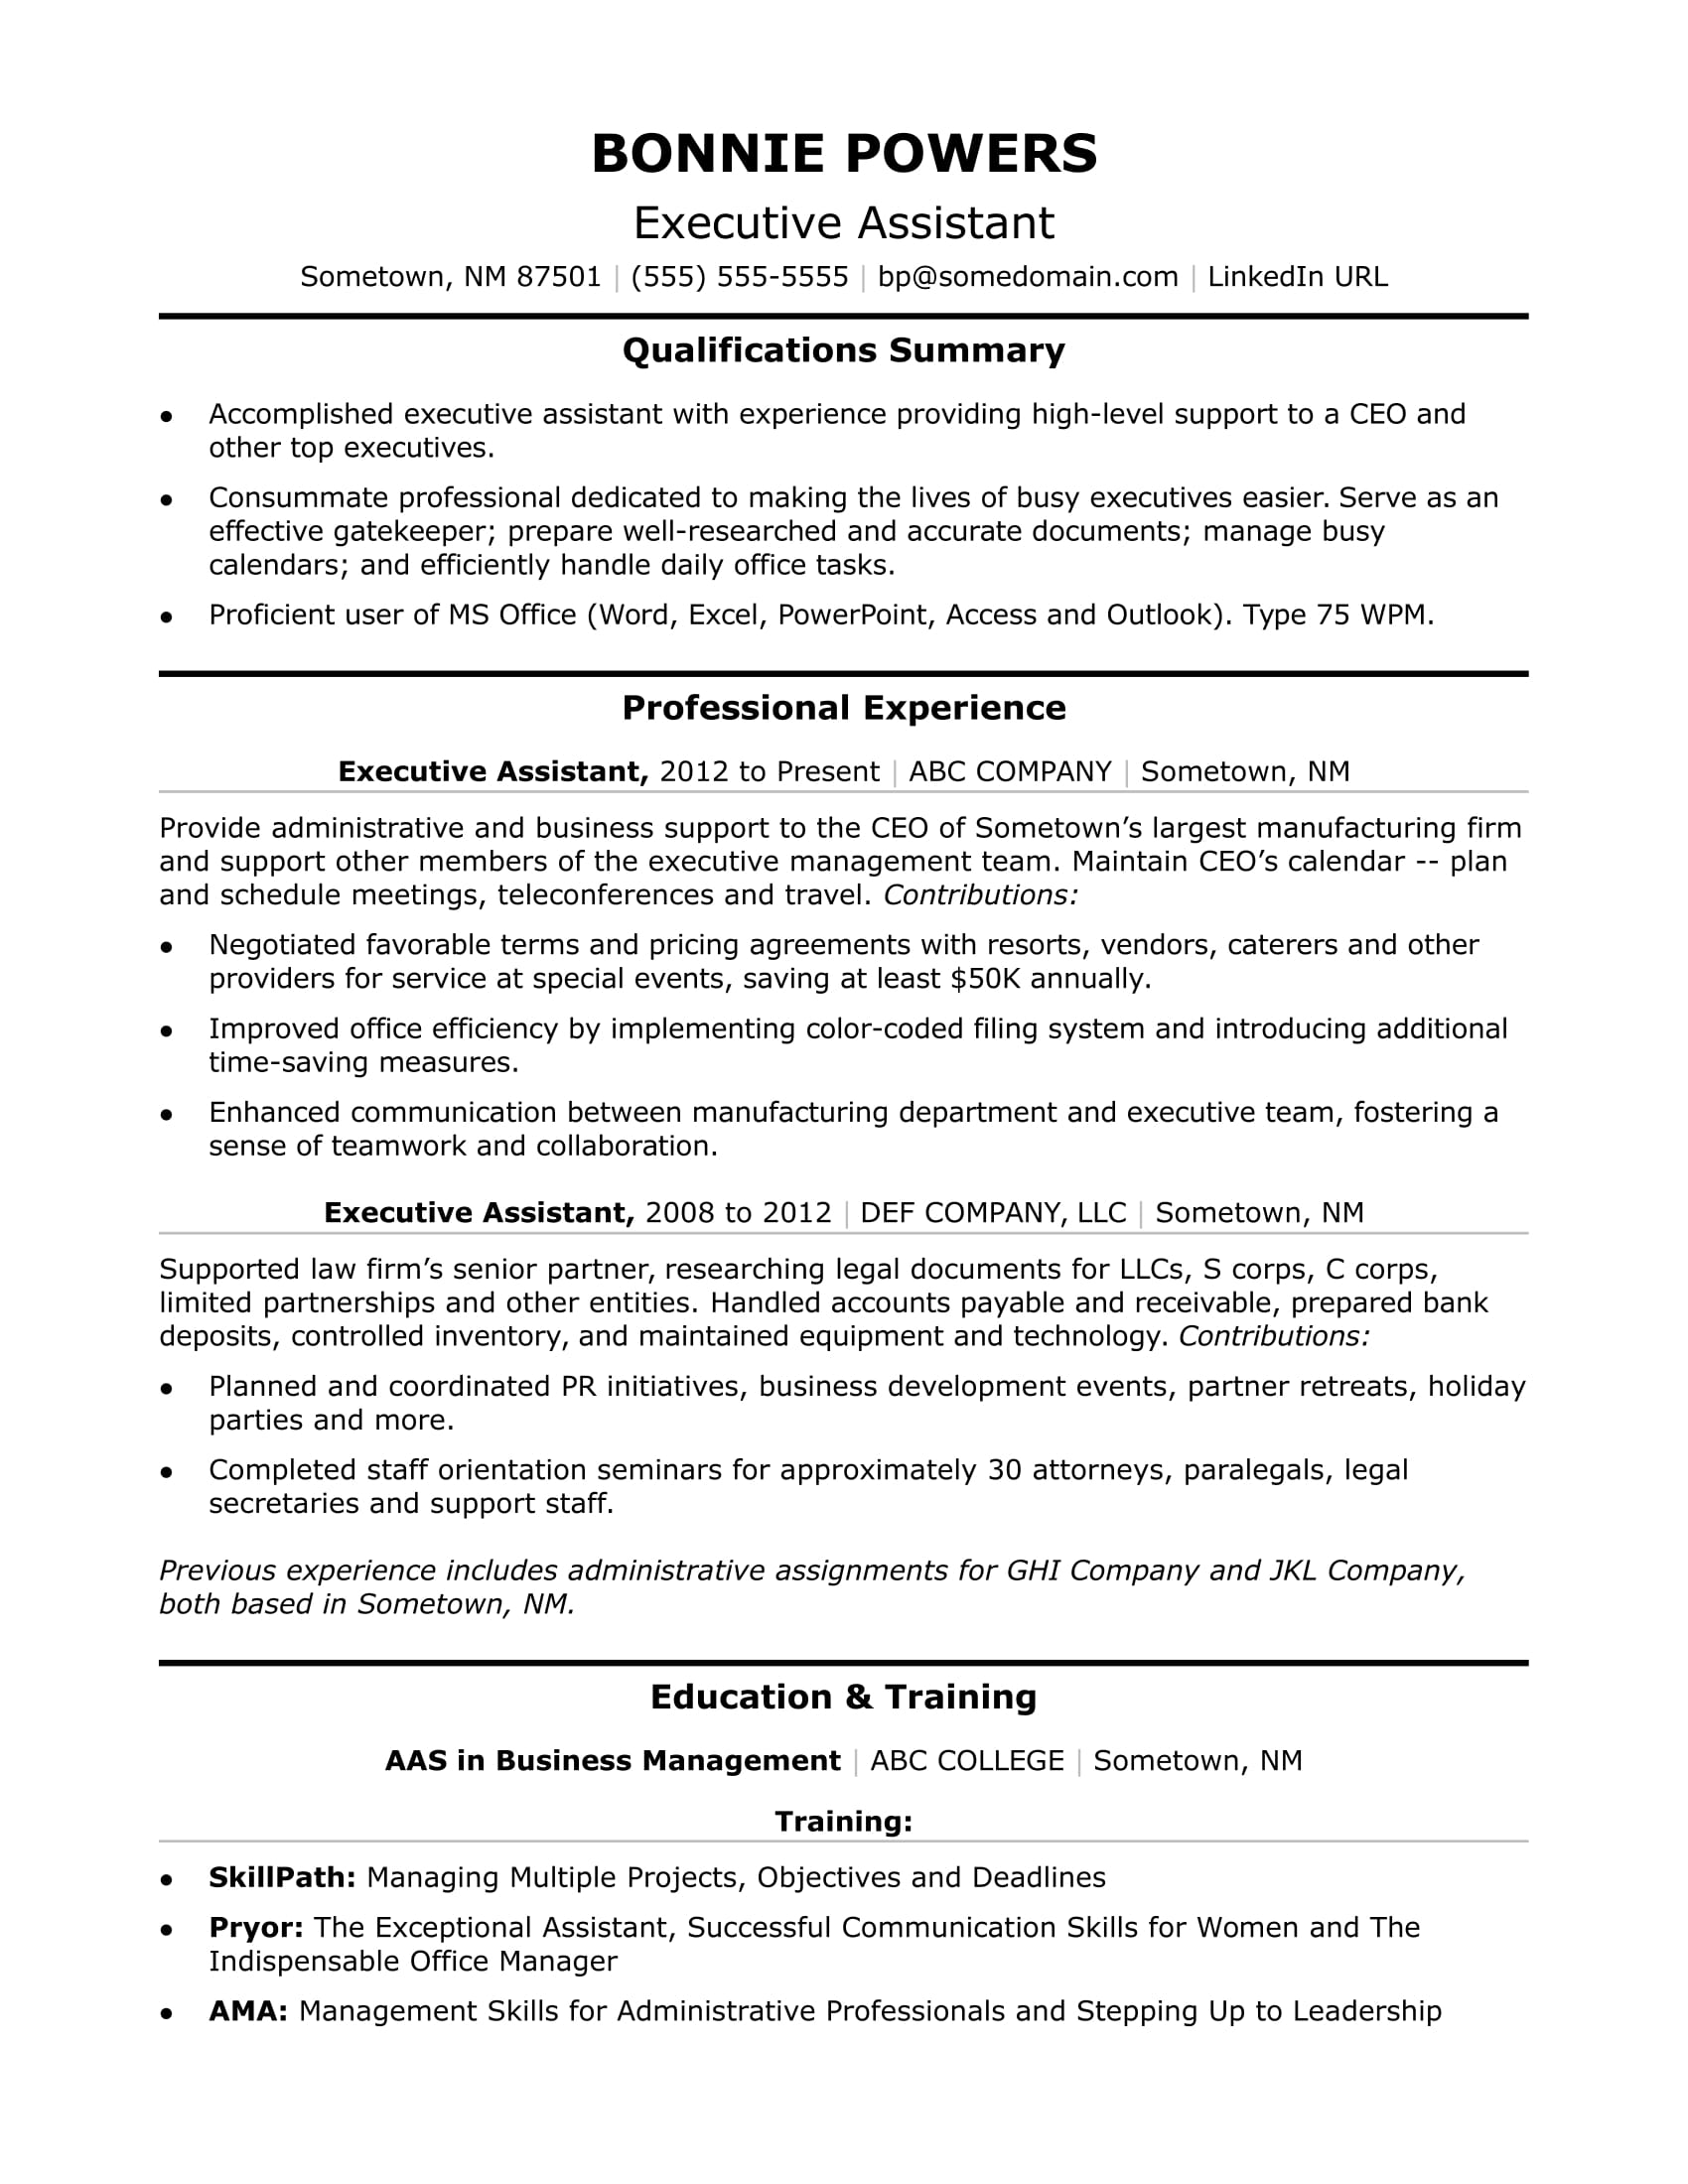 executive administrative assistant resume sample monster student association objective Resume Executive Assistant Resume